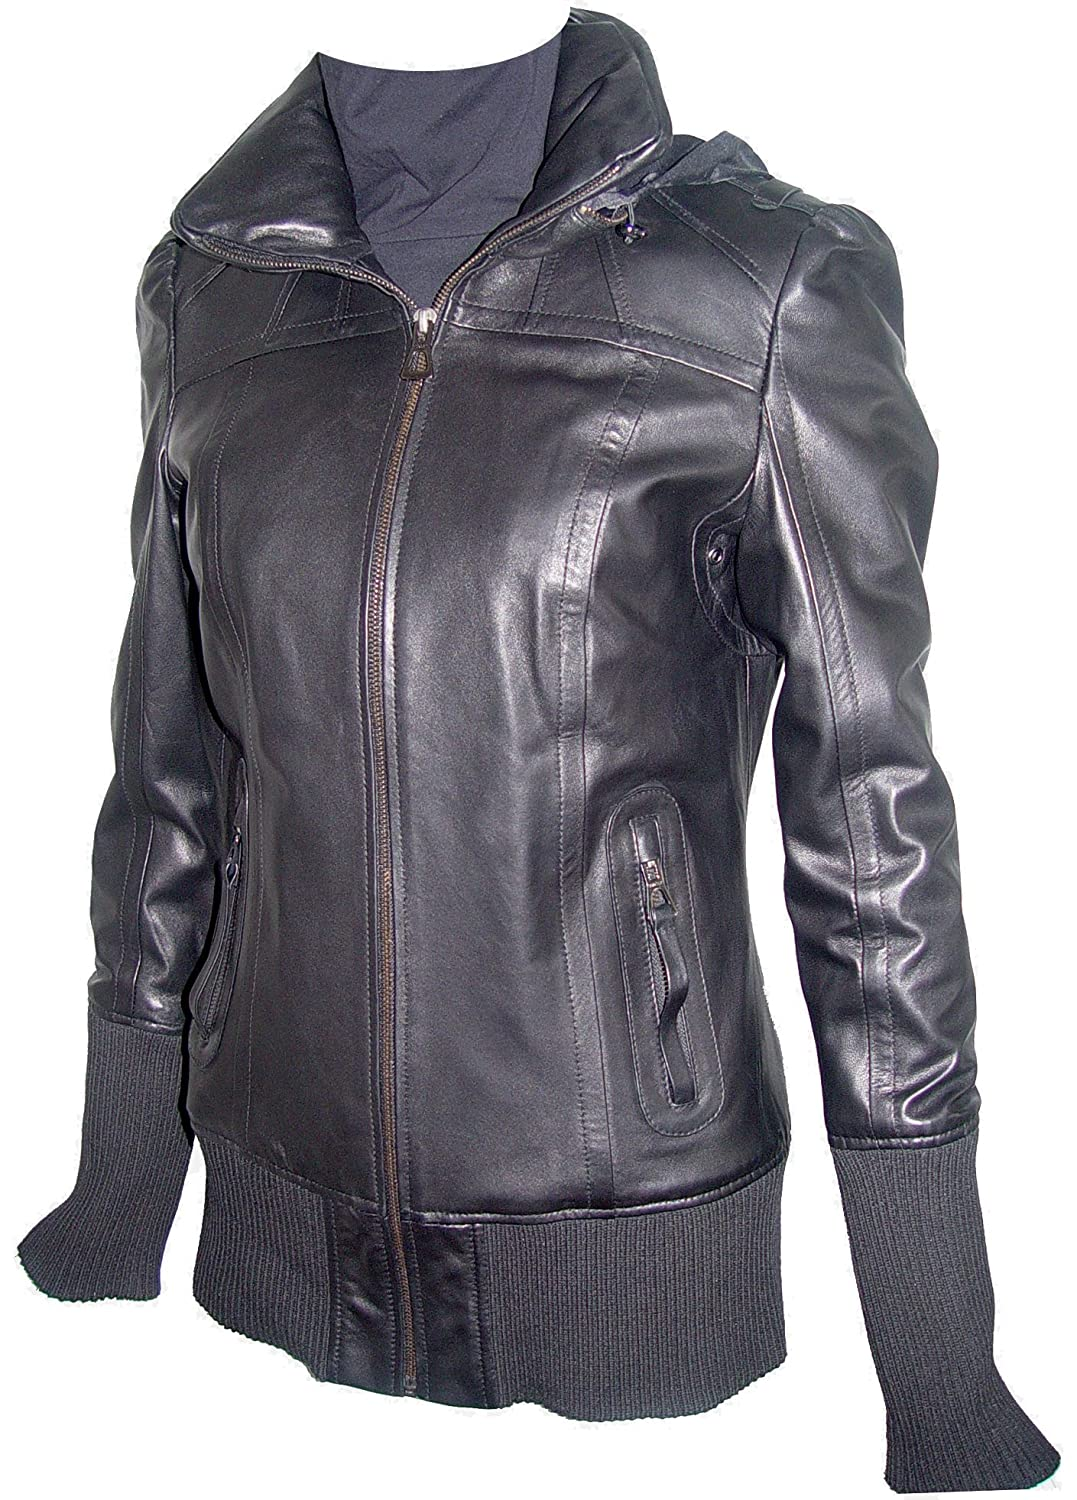 Johnny 4021 Luxury Best Cute Leather Jackets Fashion Leather Hoodie Jackets 4021stnphrzxblz